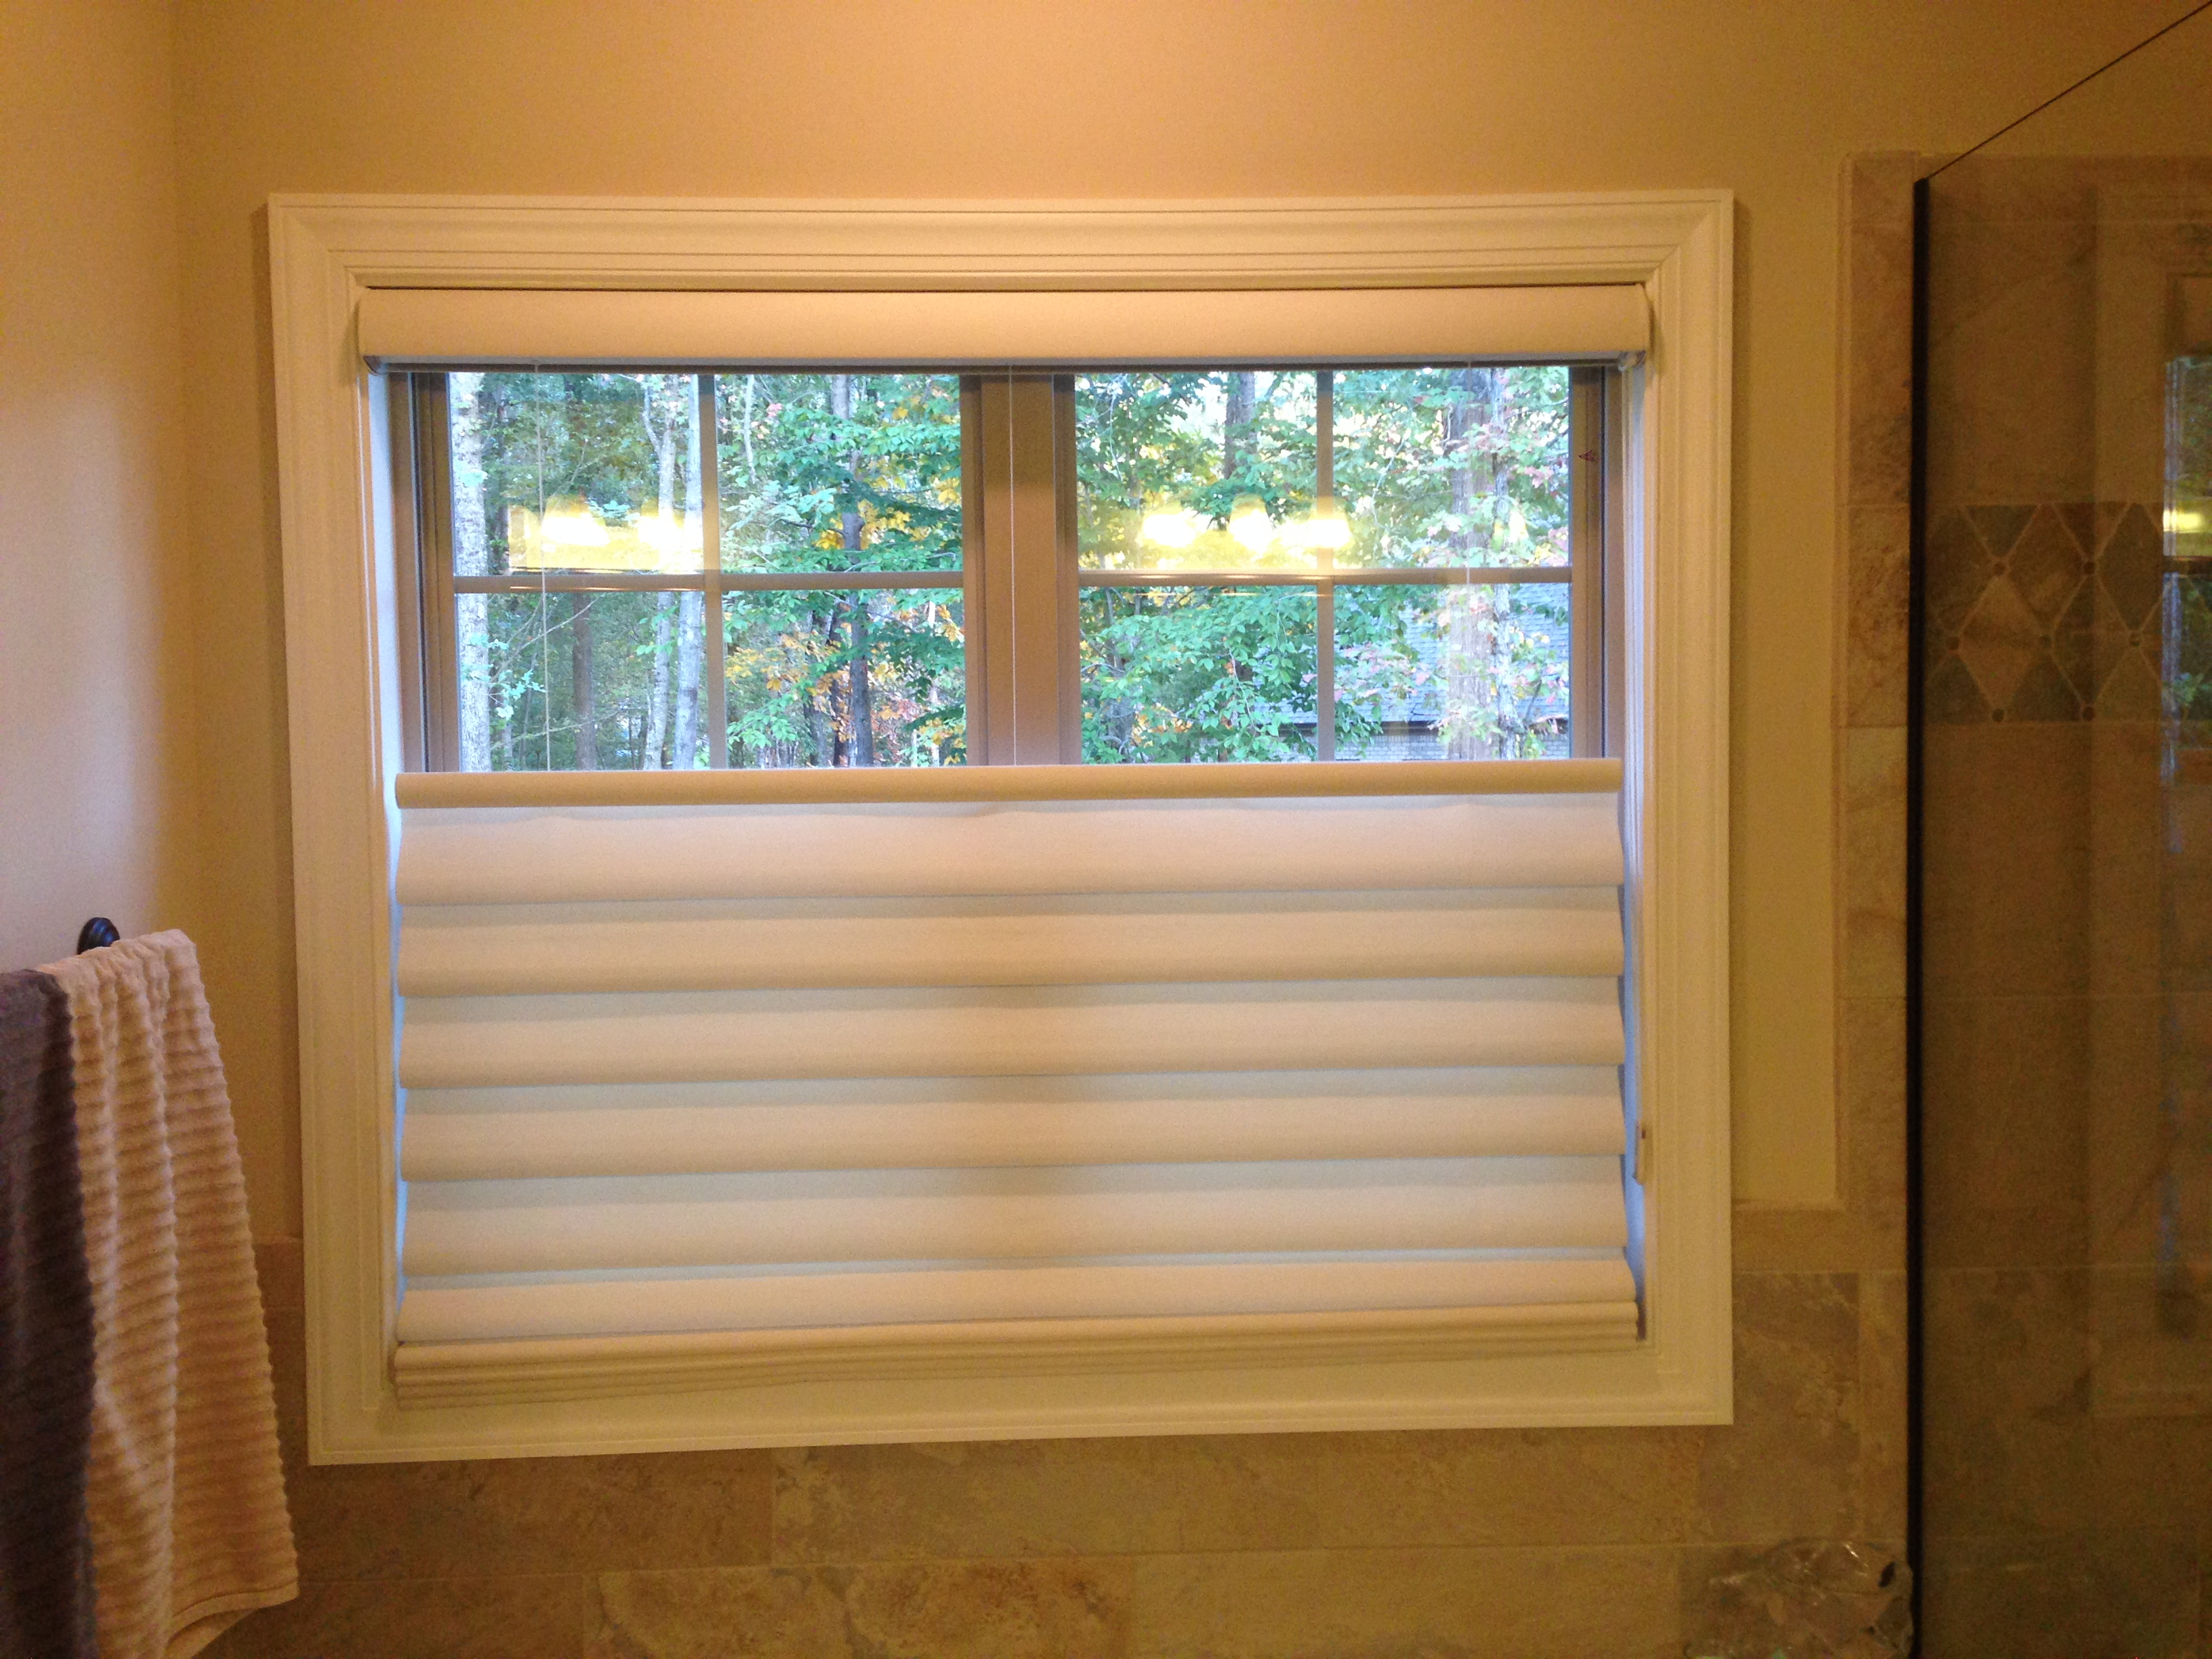 Shades archives window works studio for Hunter douglas motorized blinds troubleshooting